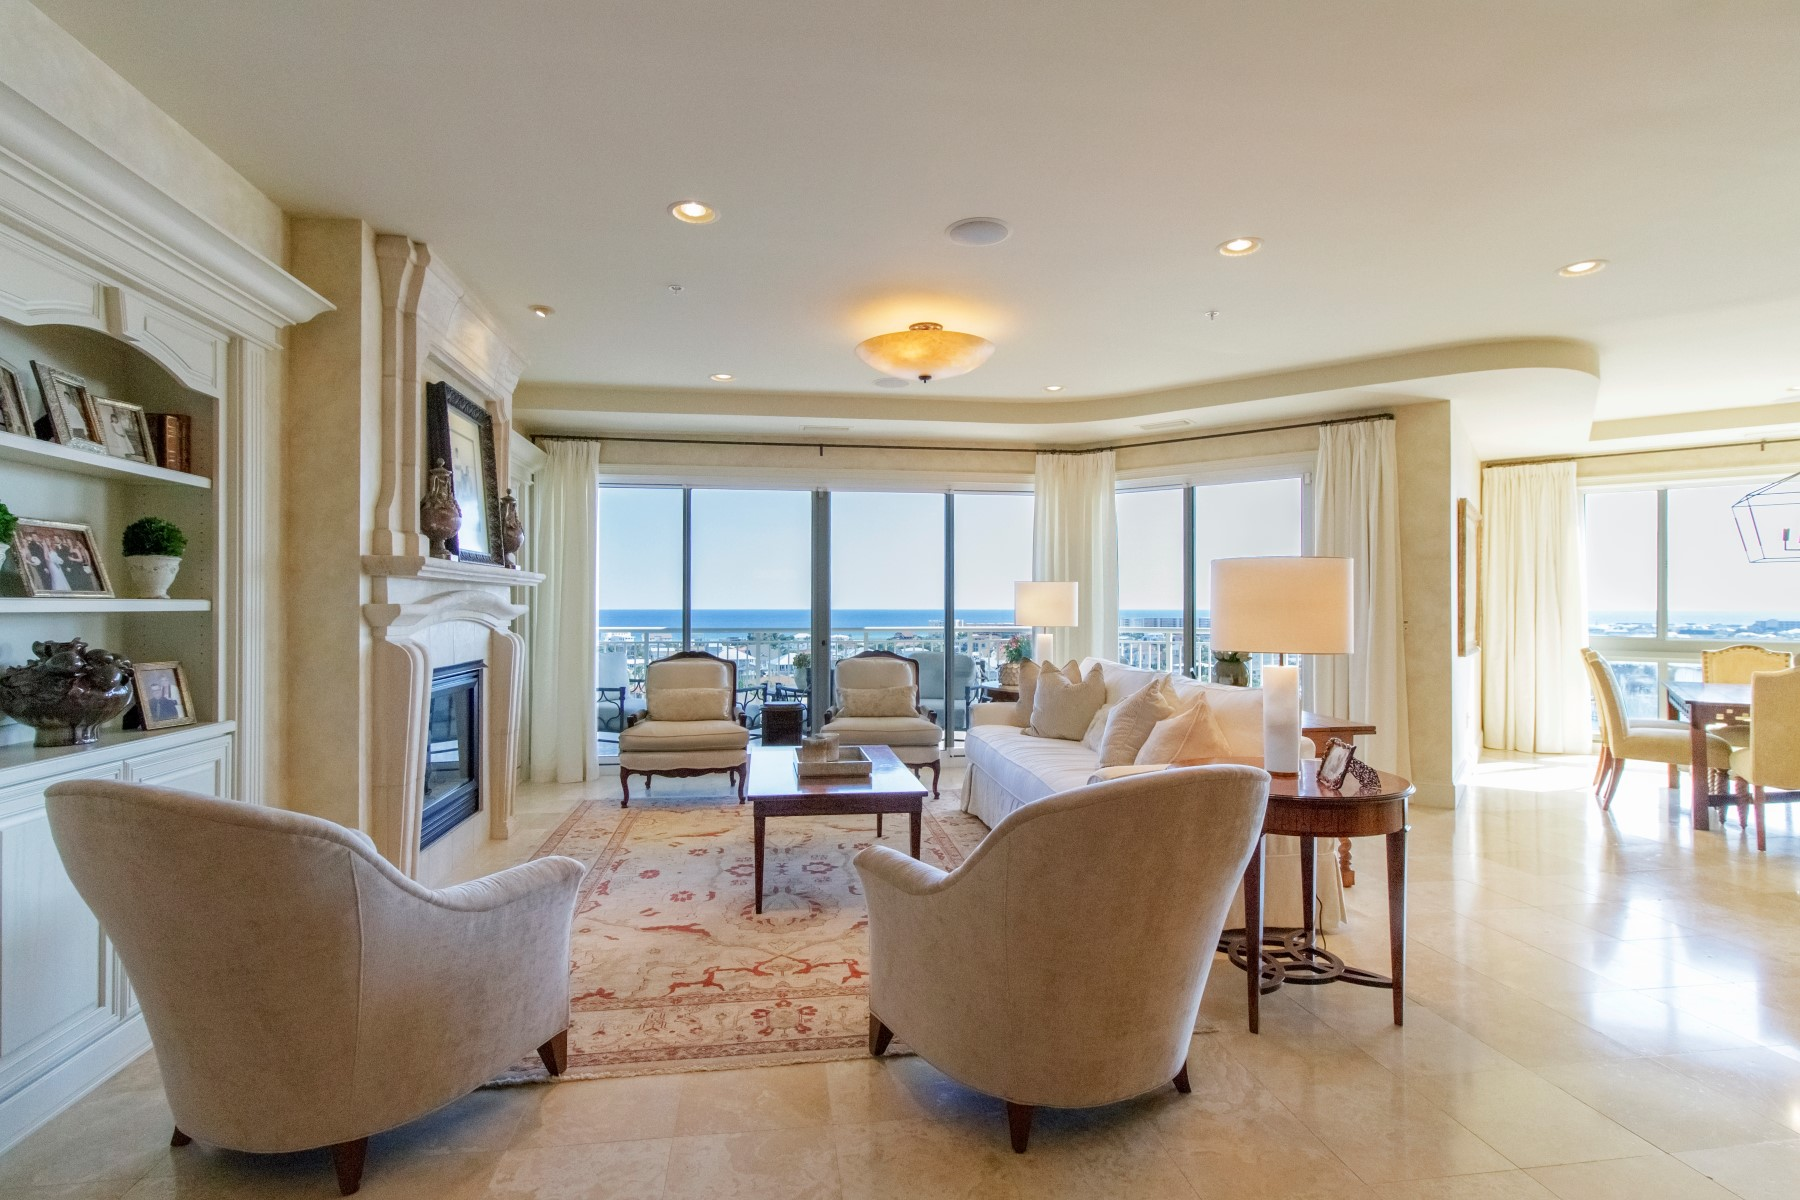 Copropriété pour l Vente à PENTHOUSE WITH GULF AND HARBOR VIEWS 662 Harbor Boulevard 910 Destin, Florida, 32541 États-Unis